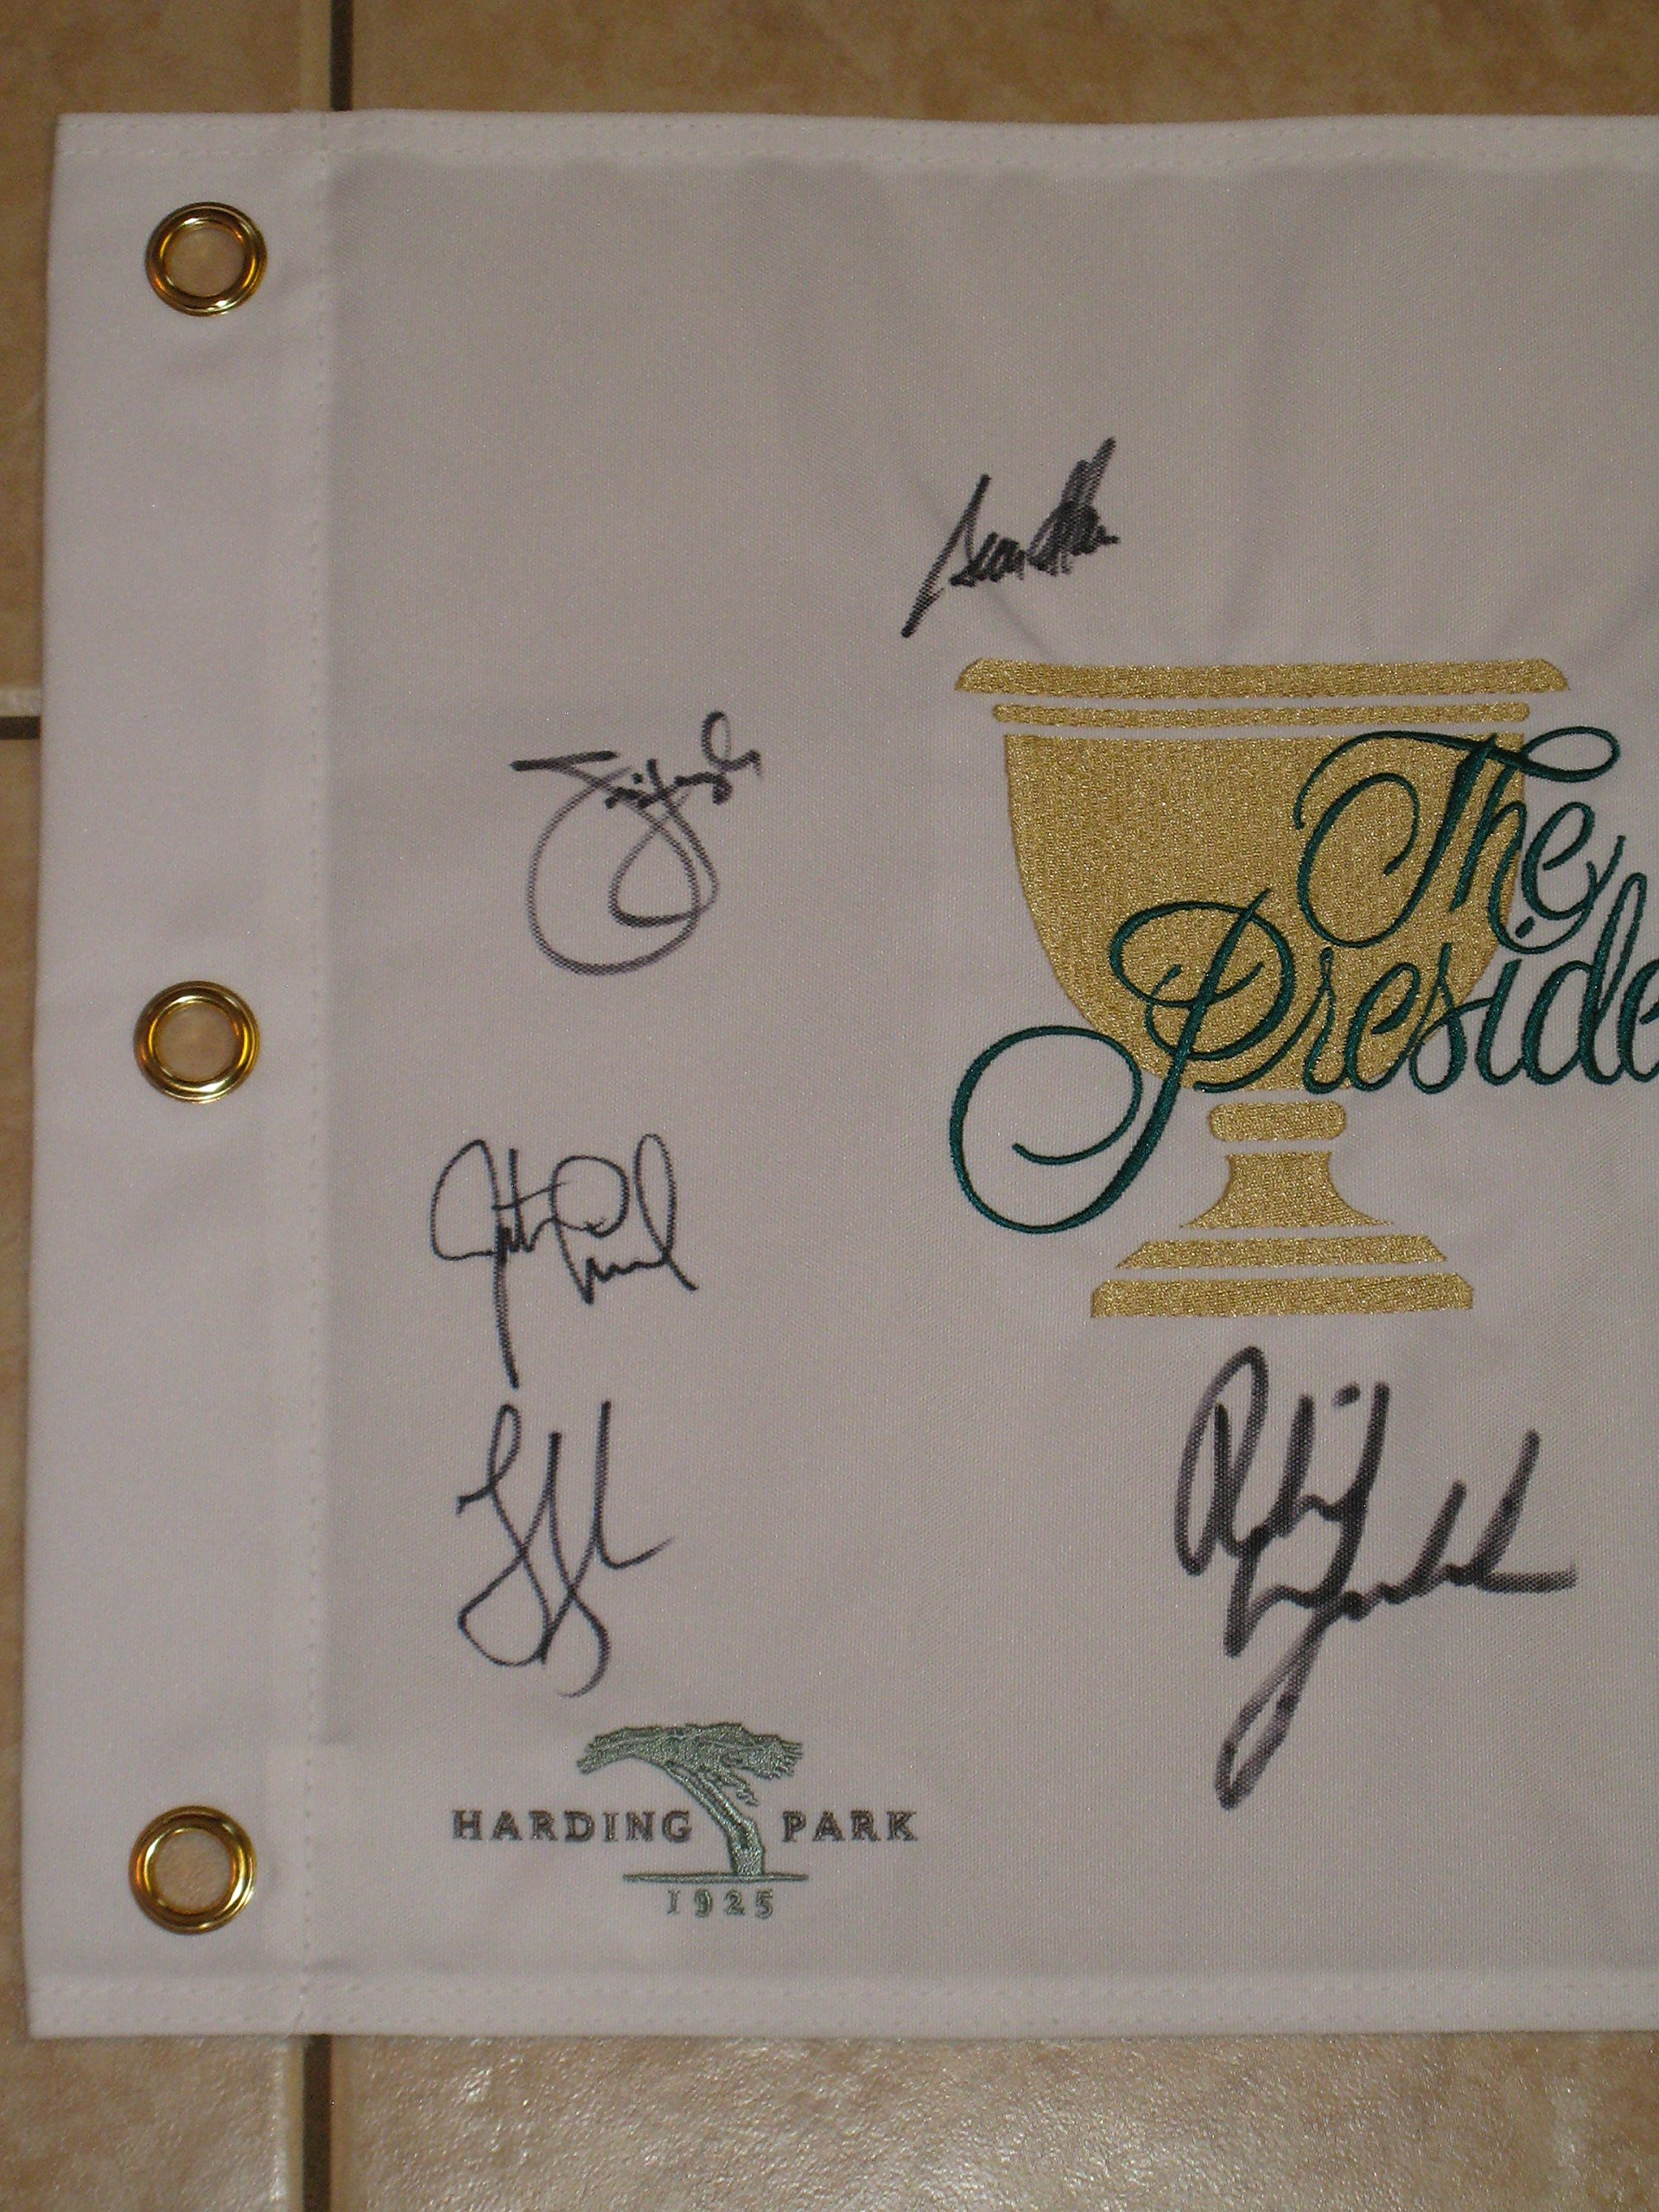 2009 Presidents Cup Harding Park Golf Flag signed by 9 Mickelson, Zach, Furyk,